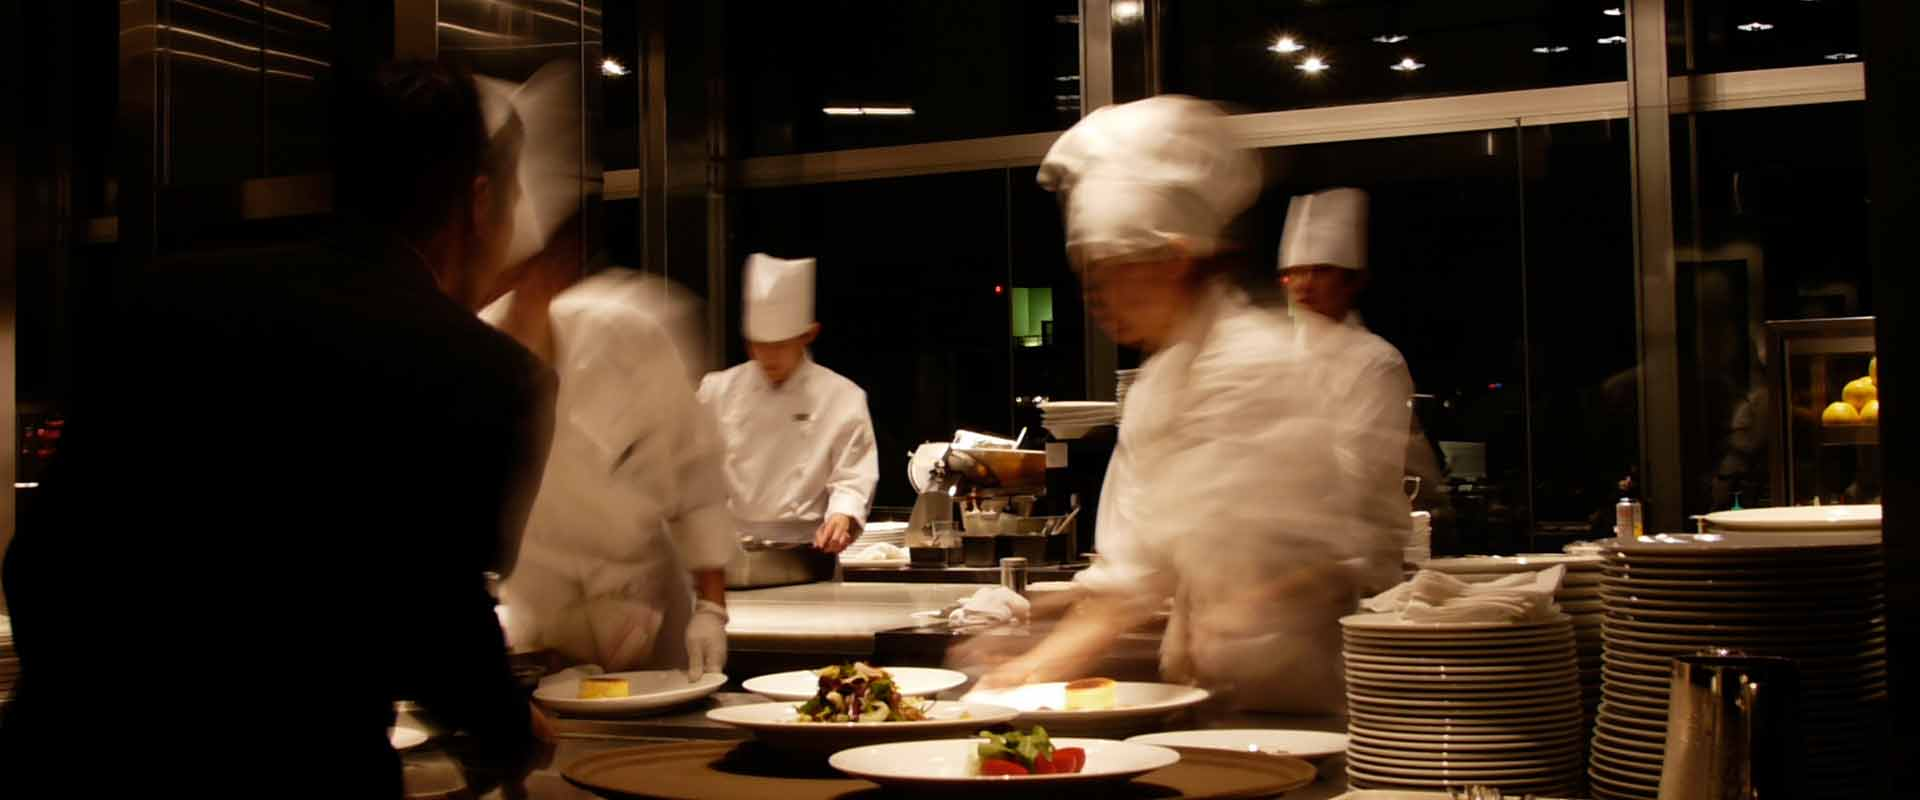 Restaurant and Foodservice Equipment Leasing